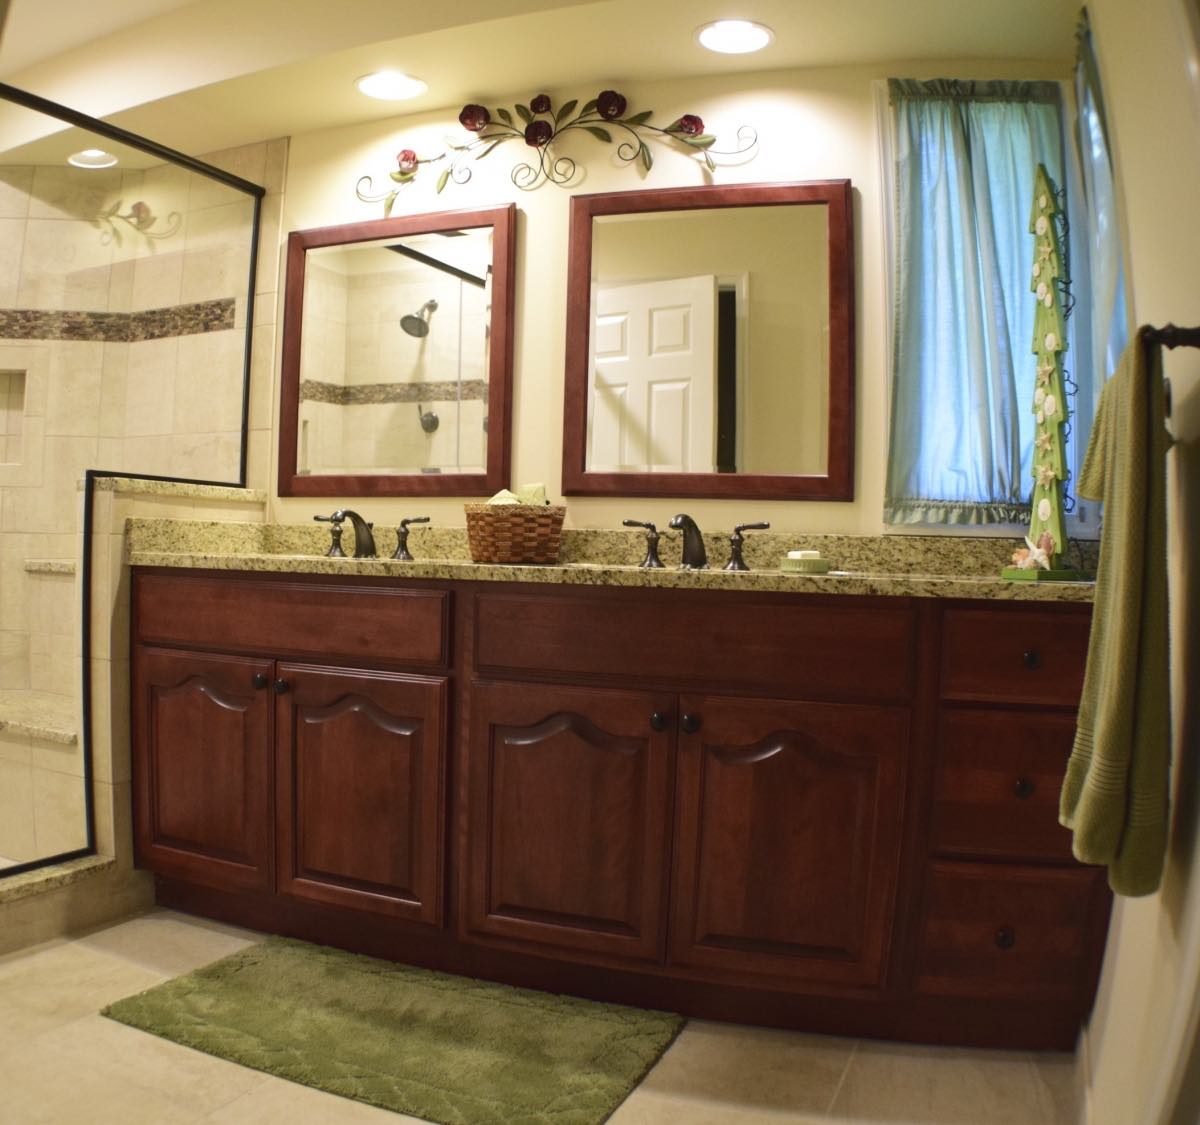 Bathroom Remodeling Towson bathroom remodeling specialists - baltimore maryland